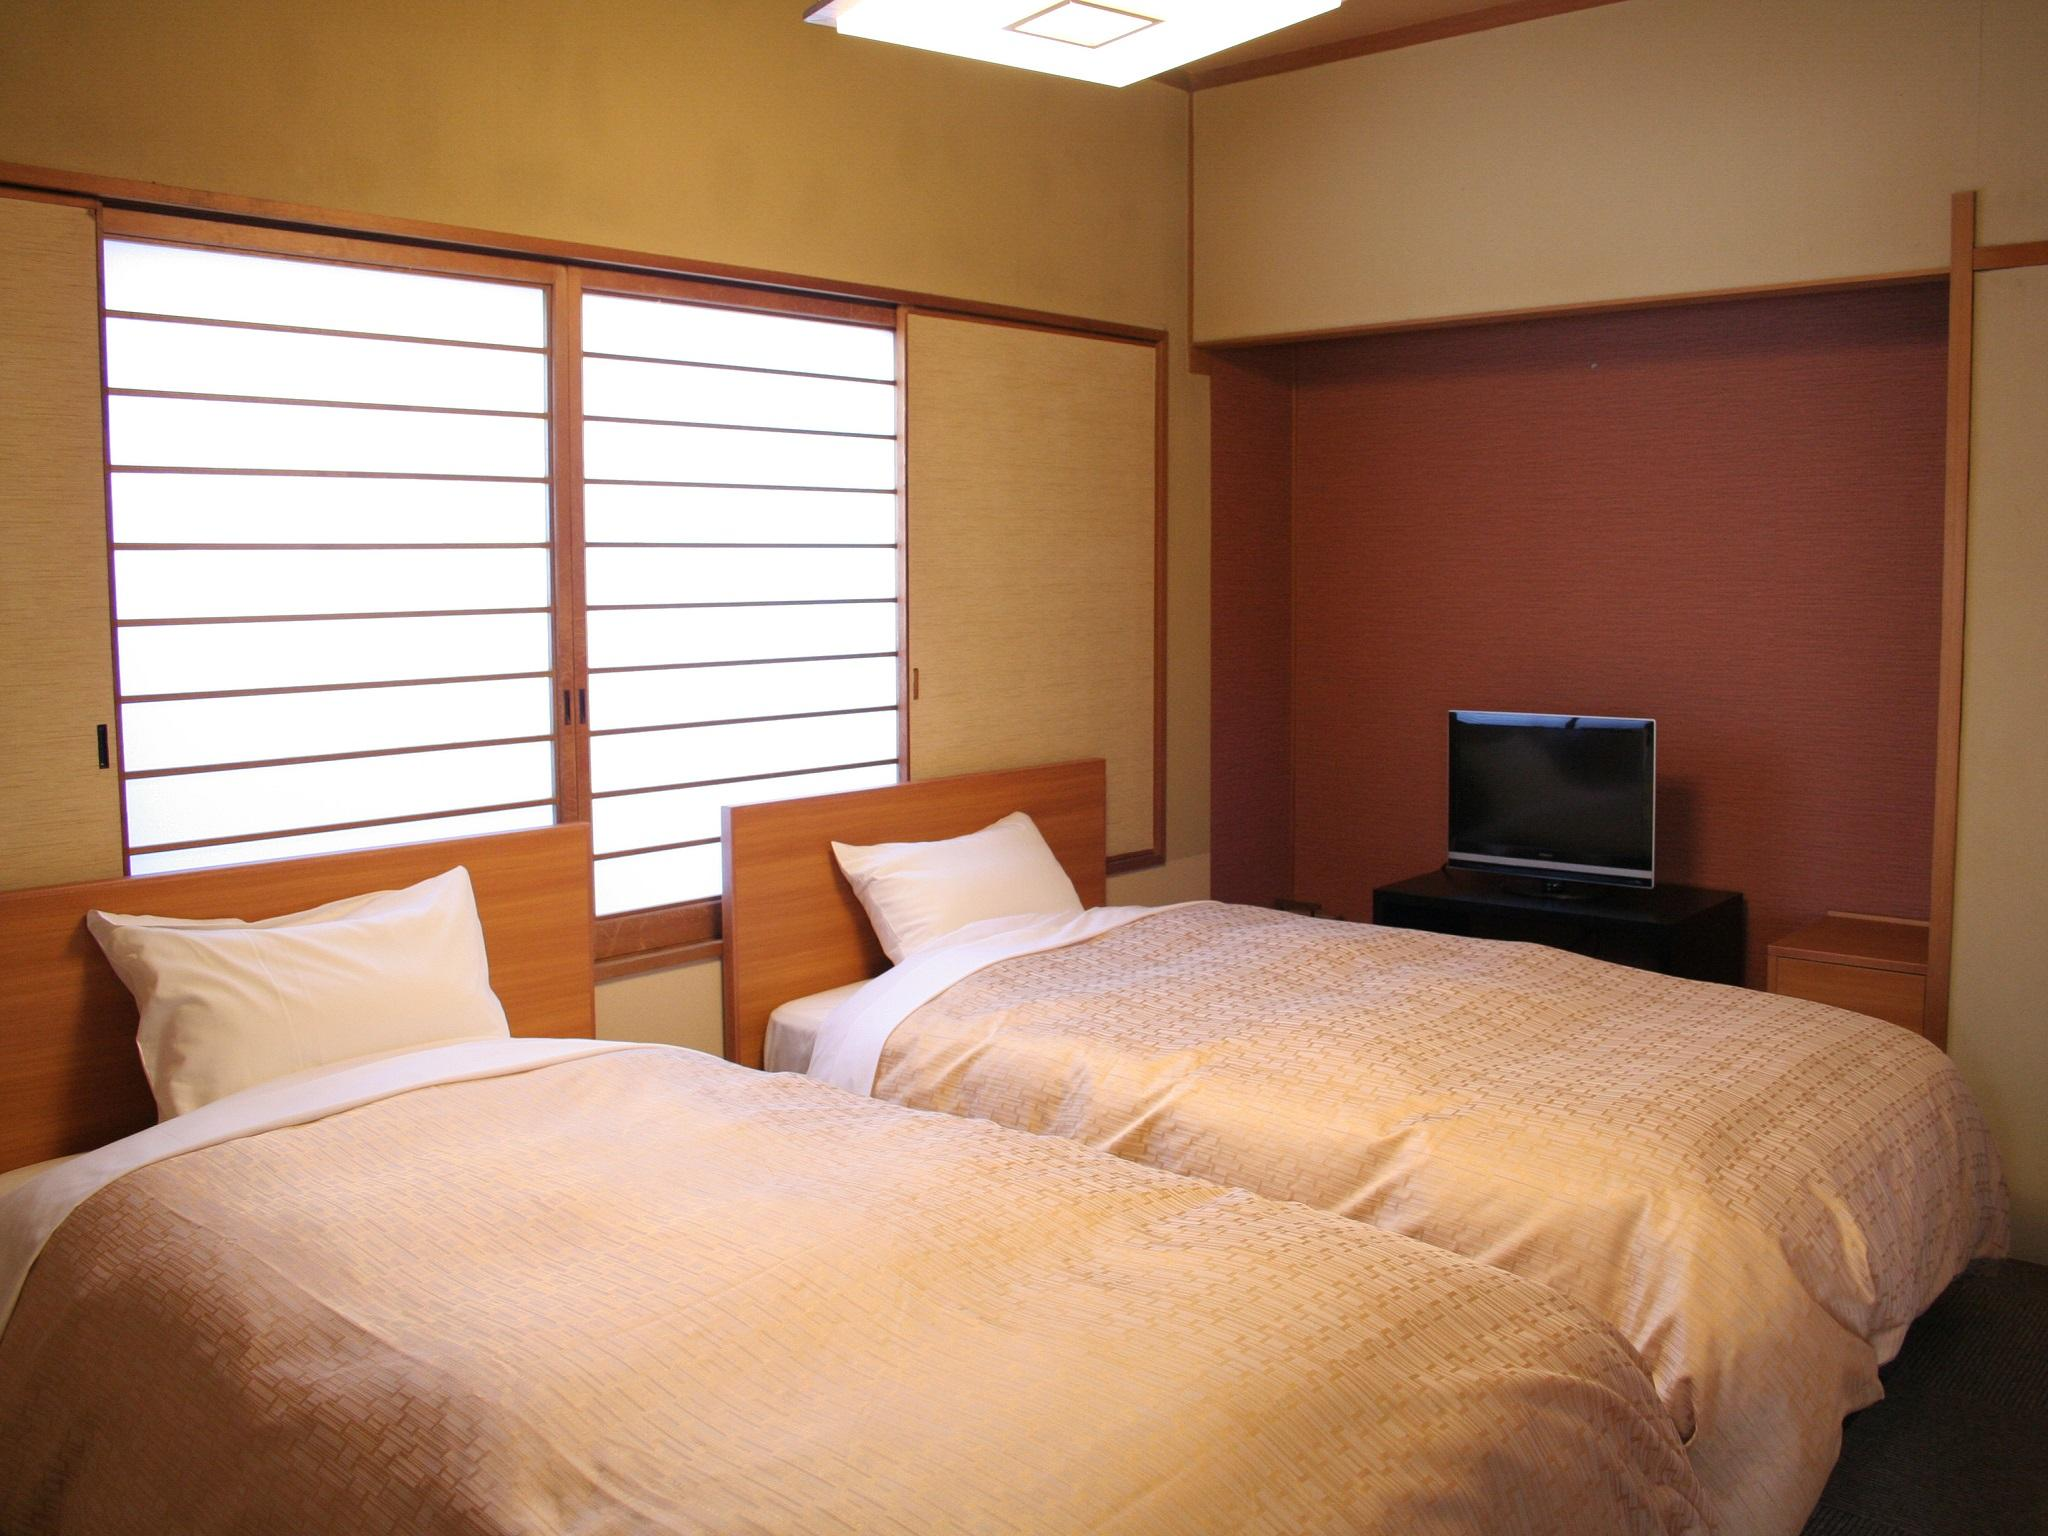 Camera in Stile Giapponese-Occidentale (Japanese Western Style Room)